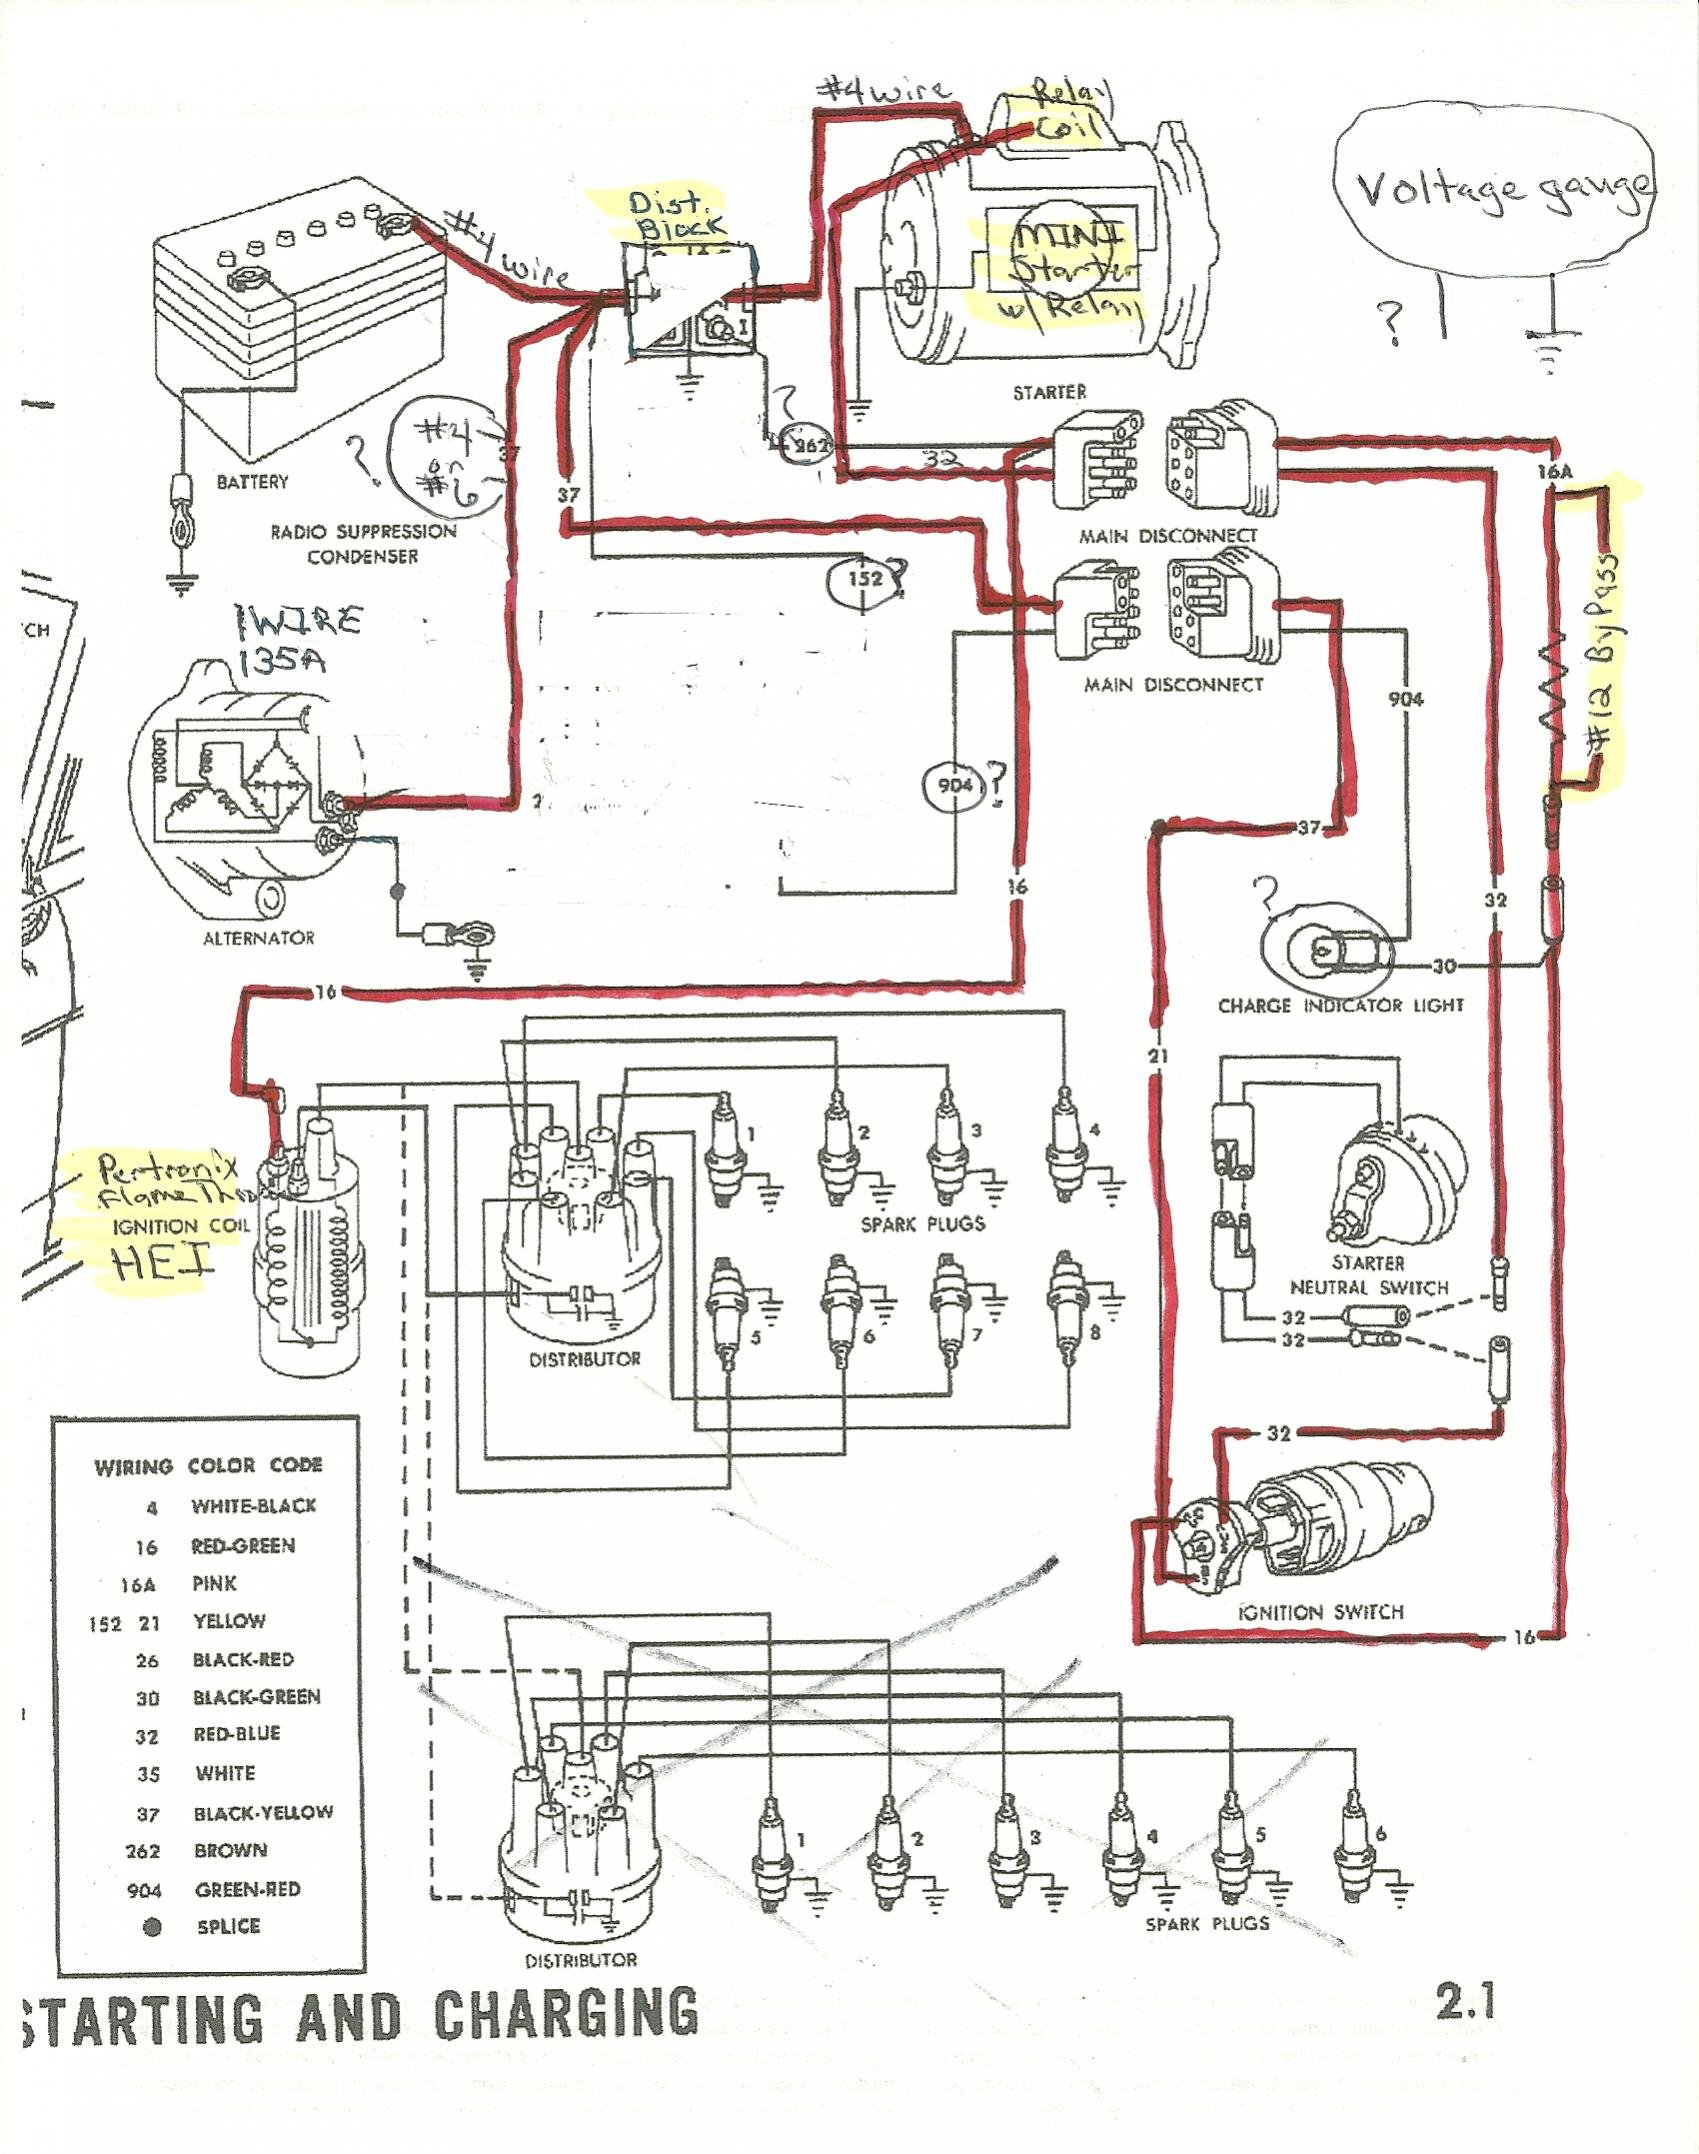 1970 Ford Mustang Alternator Wiring Diagram Detailed Diagrams 1956 Dodge Truck 1965 Schematics 1995